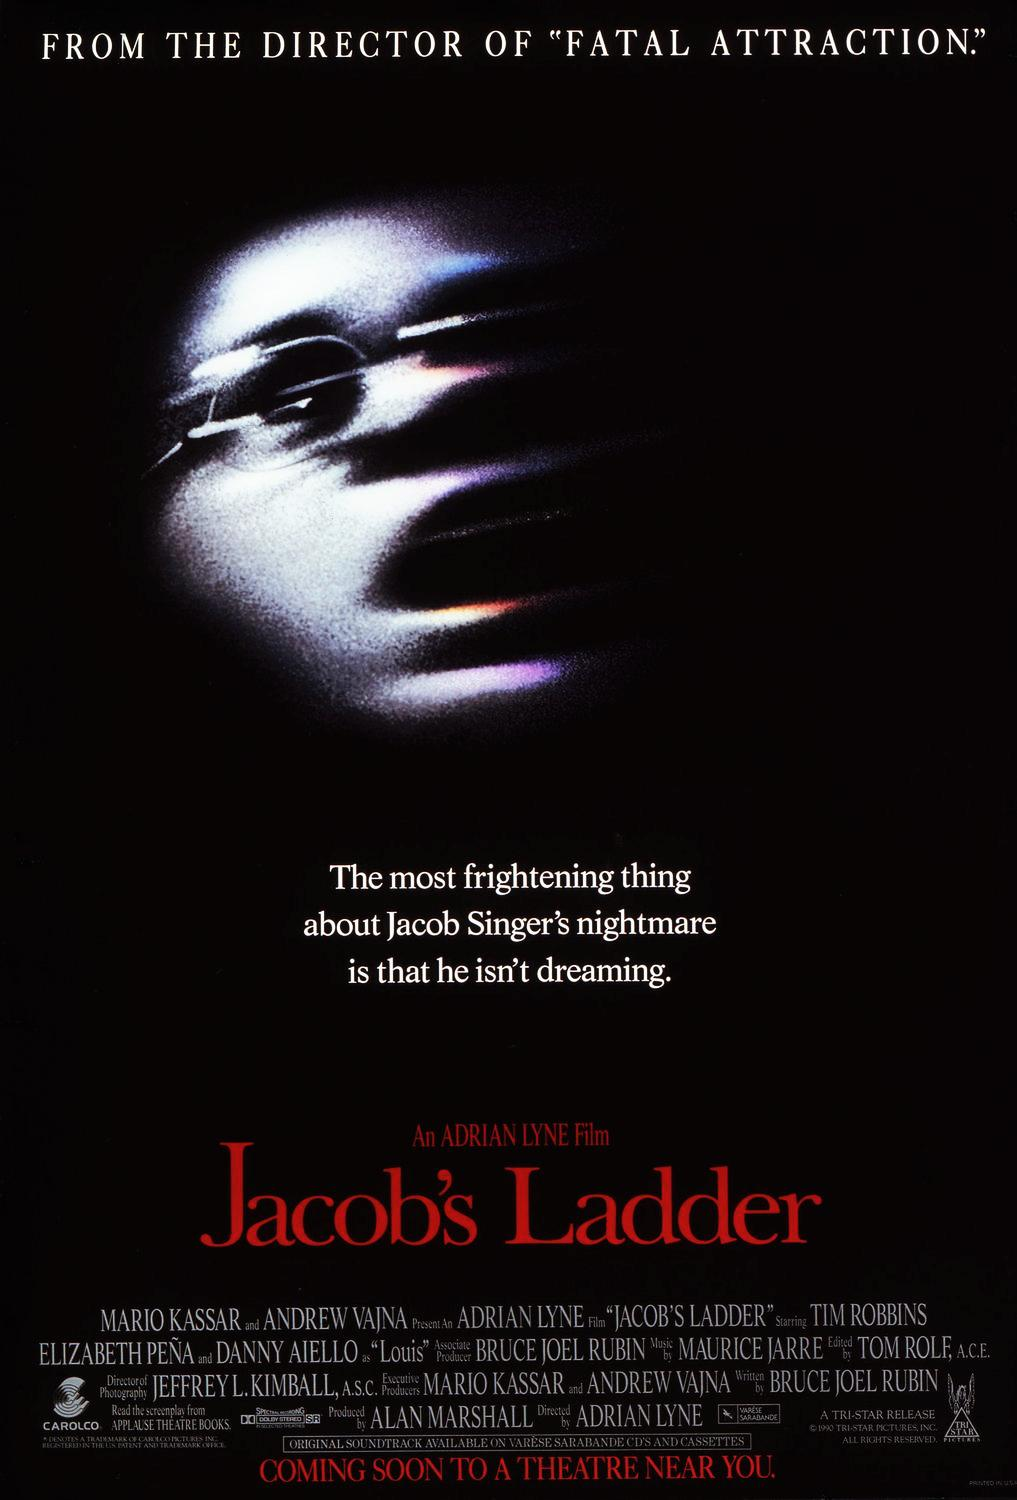 Image result for jacobs ladder movie poster